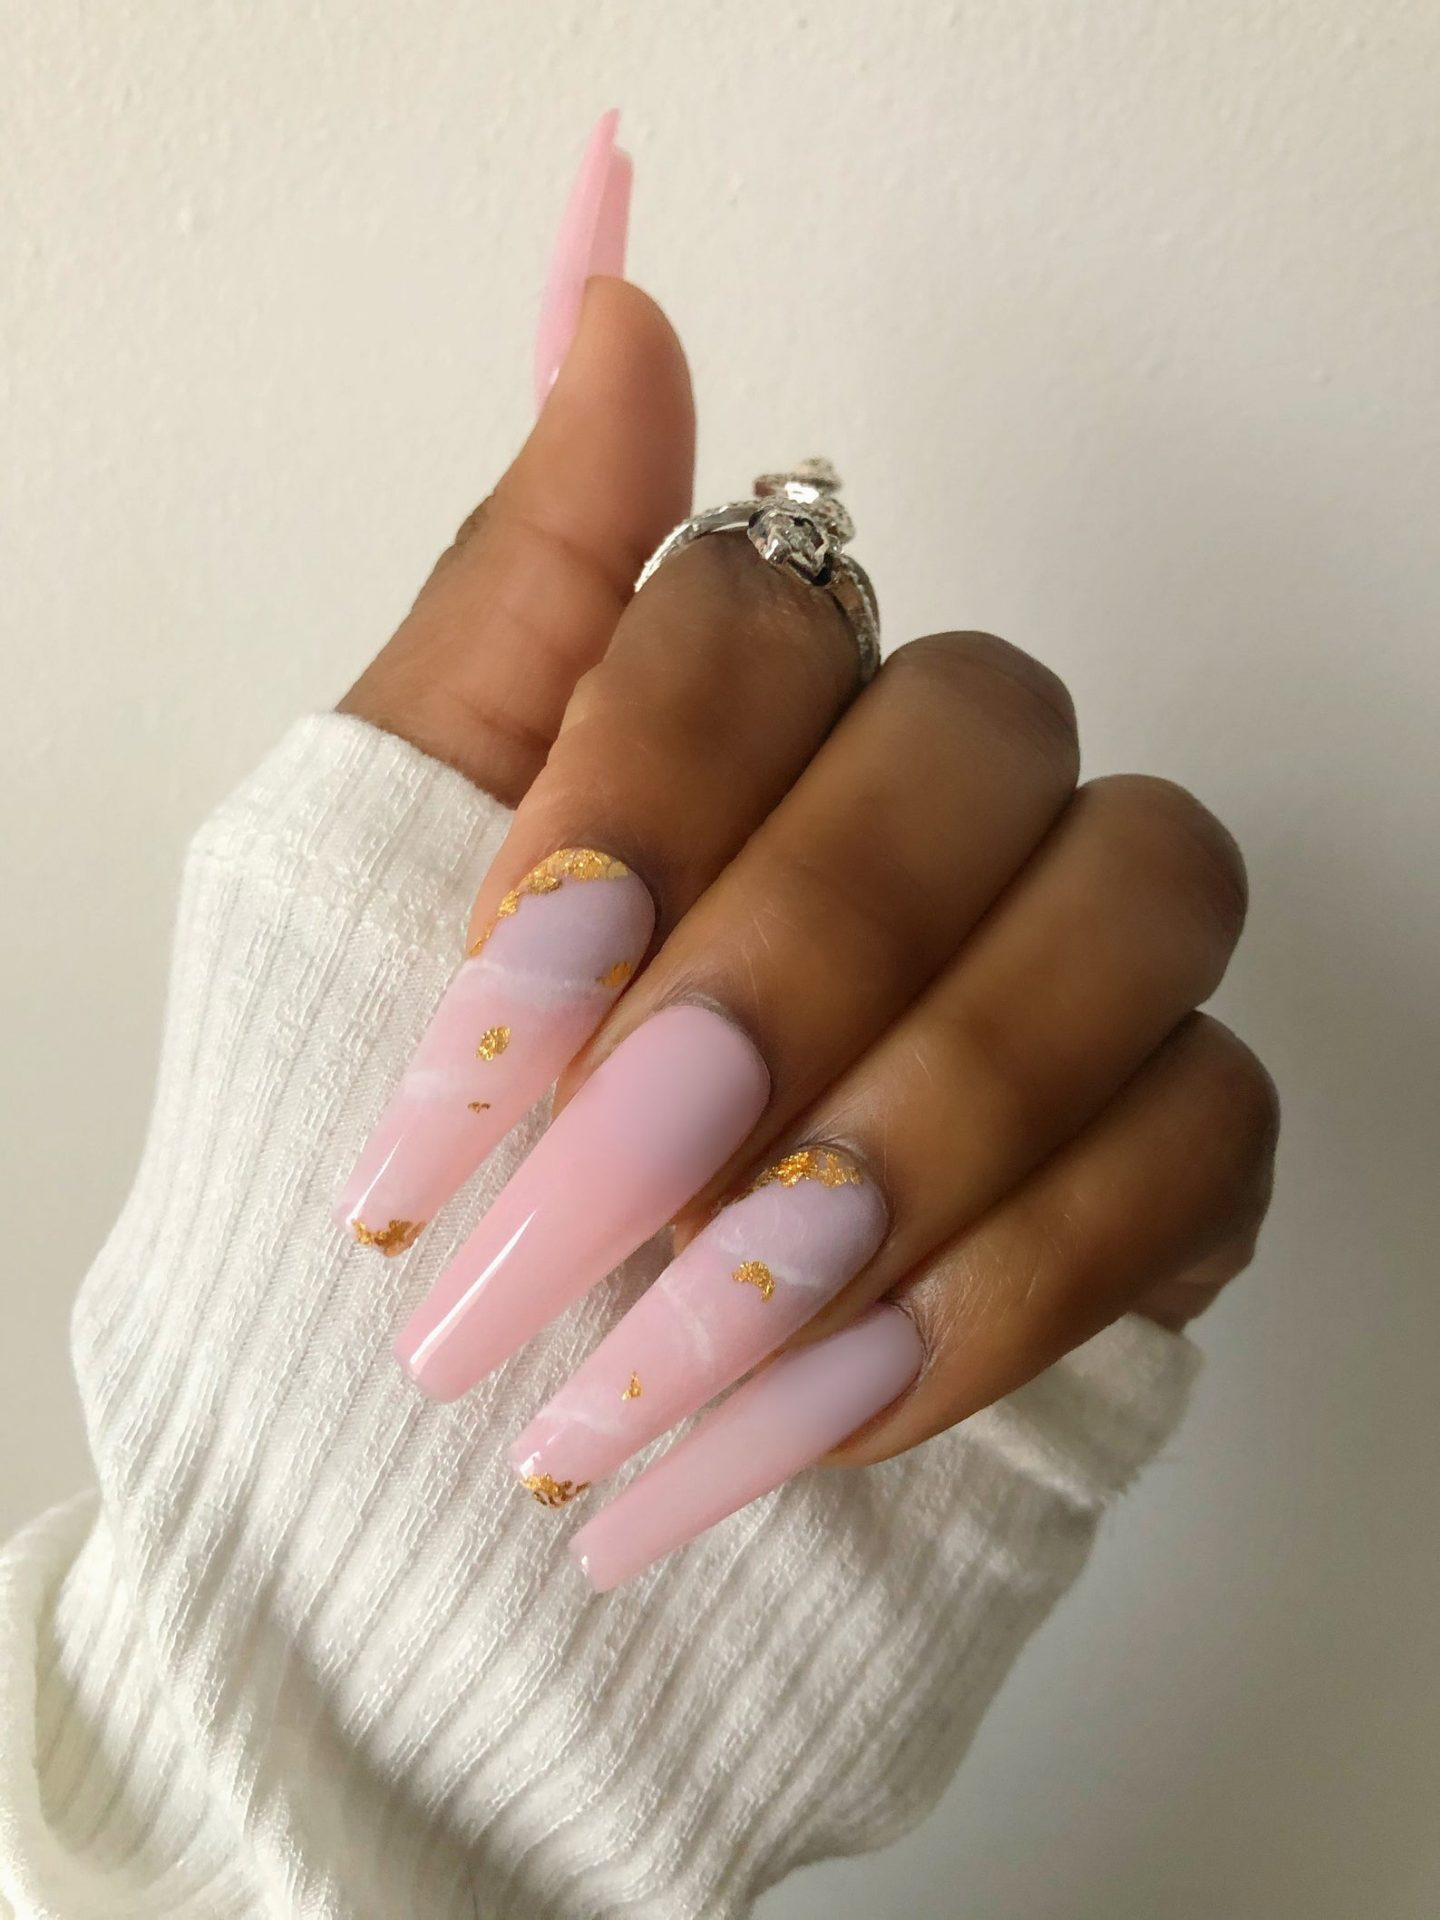 Long light pink press on nails with gold foil